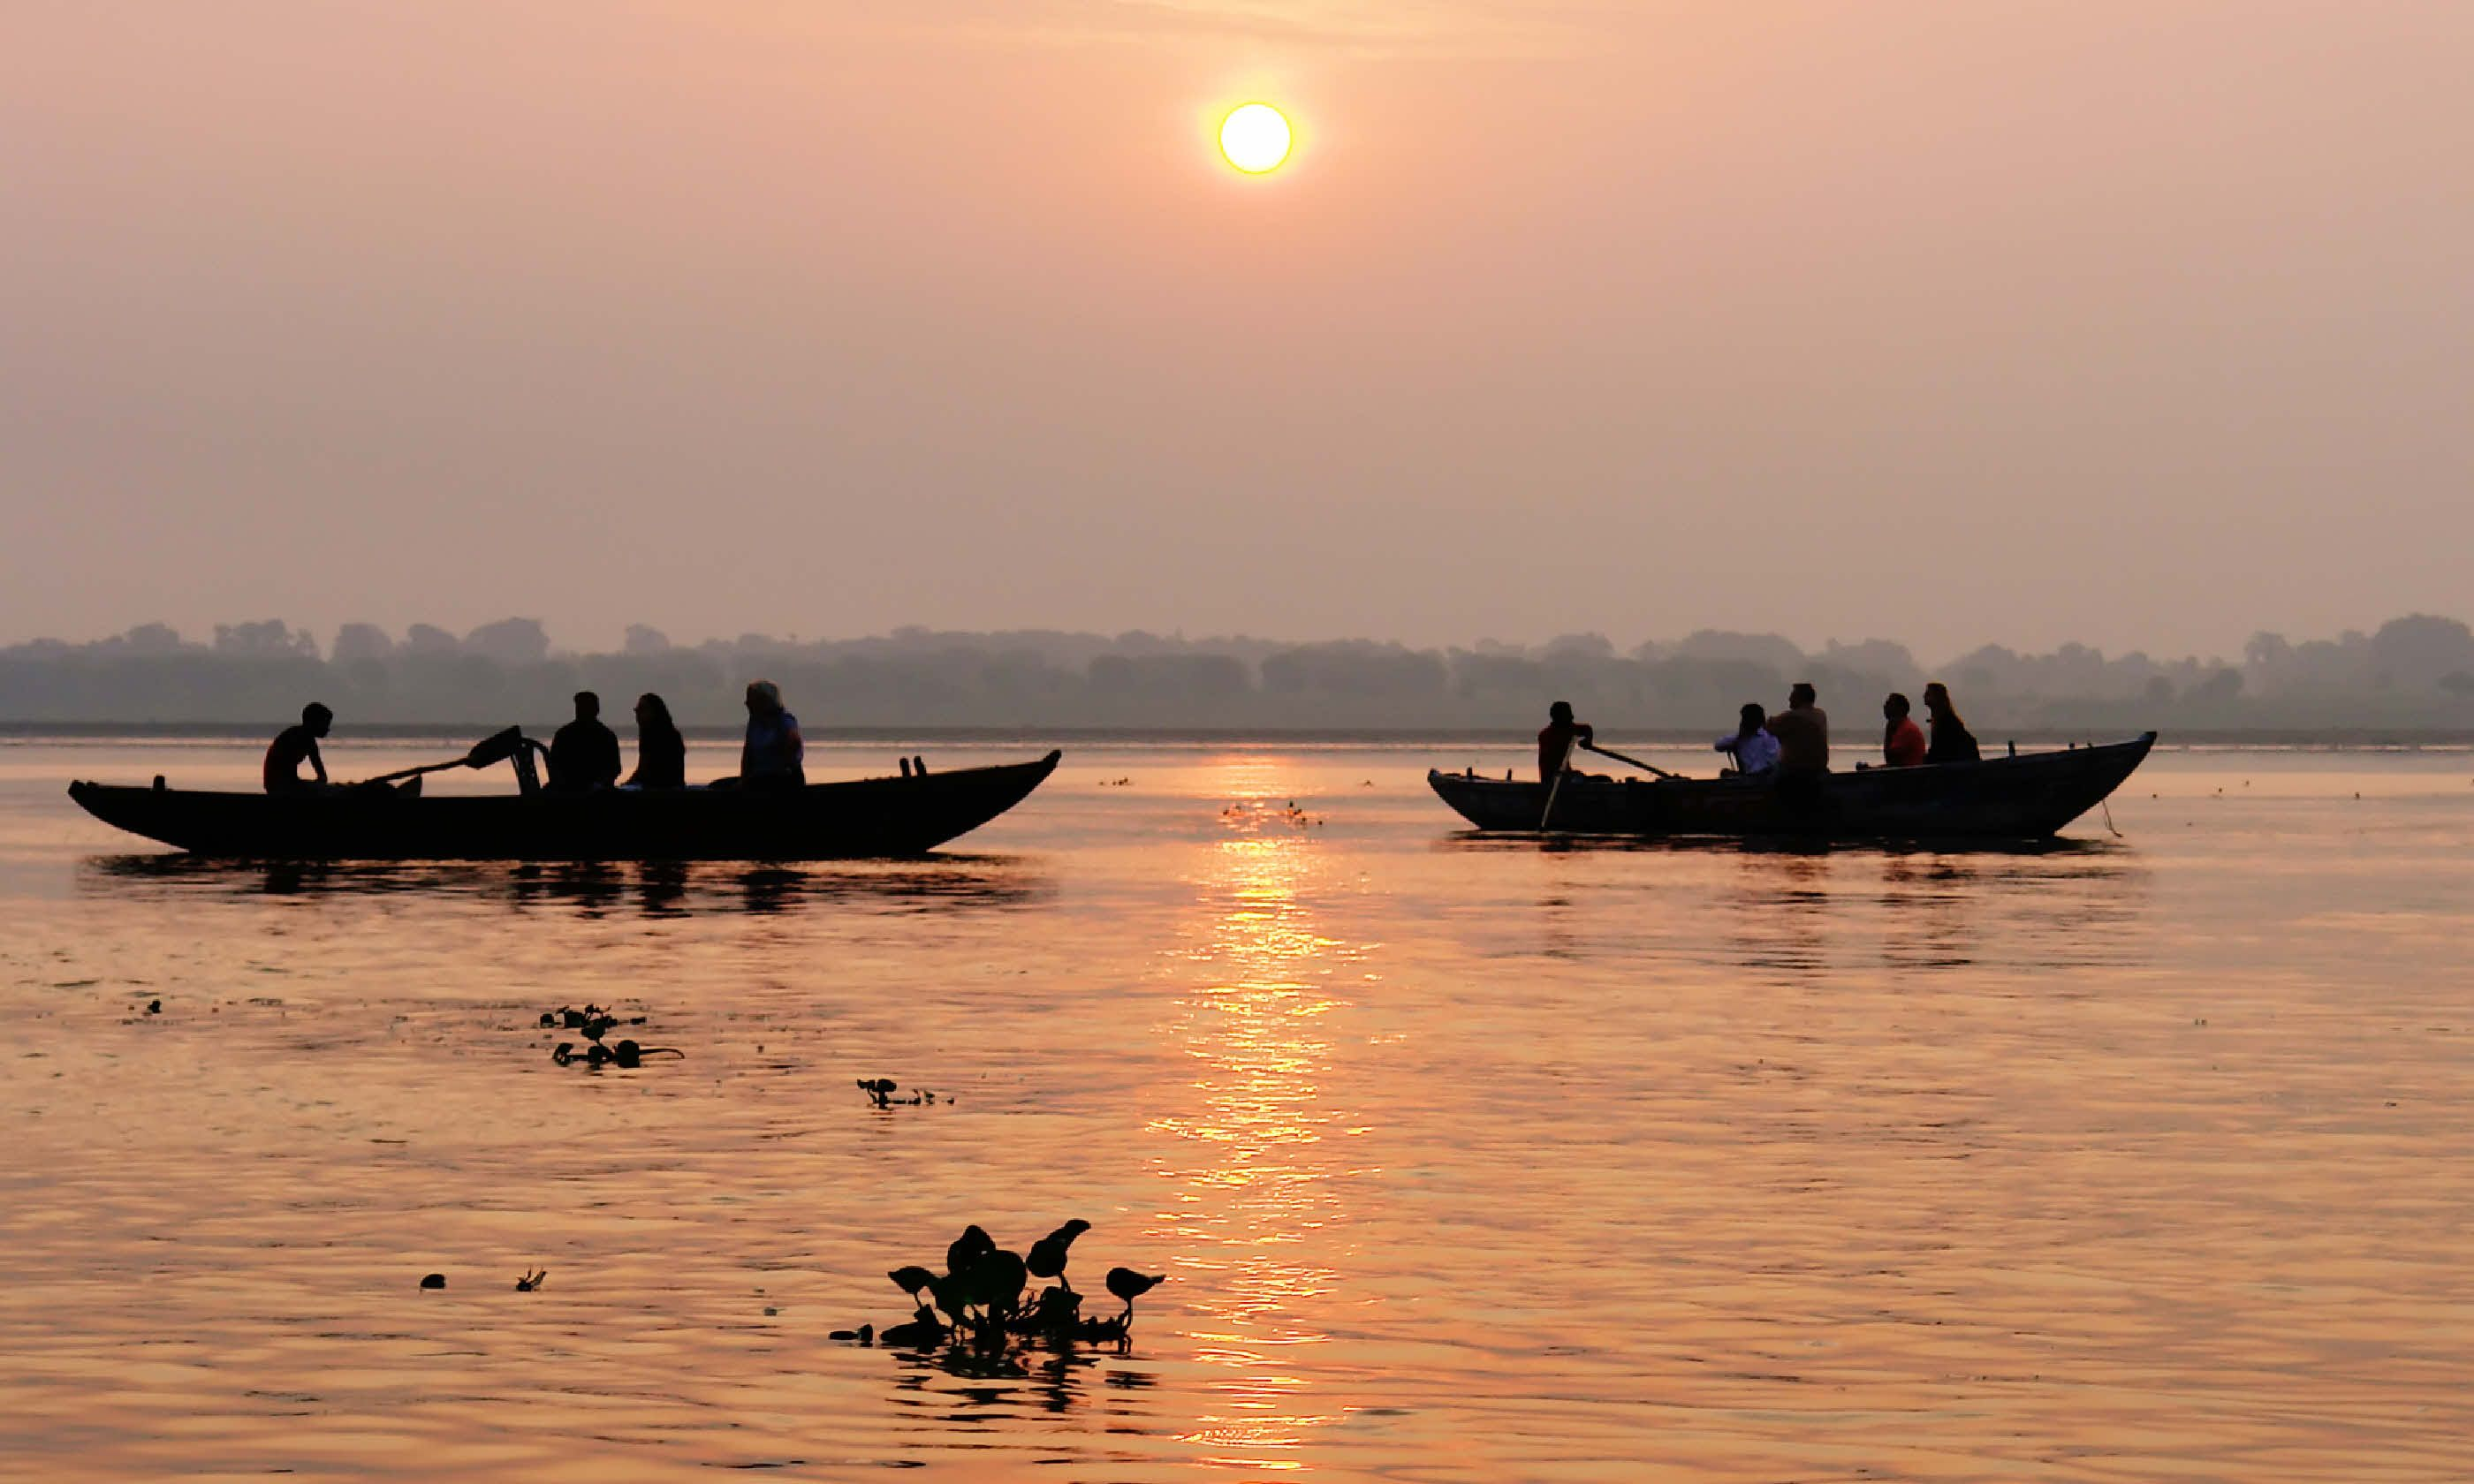 Traditional boat trip on Ganjes river at sunrise (Shutterstock)